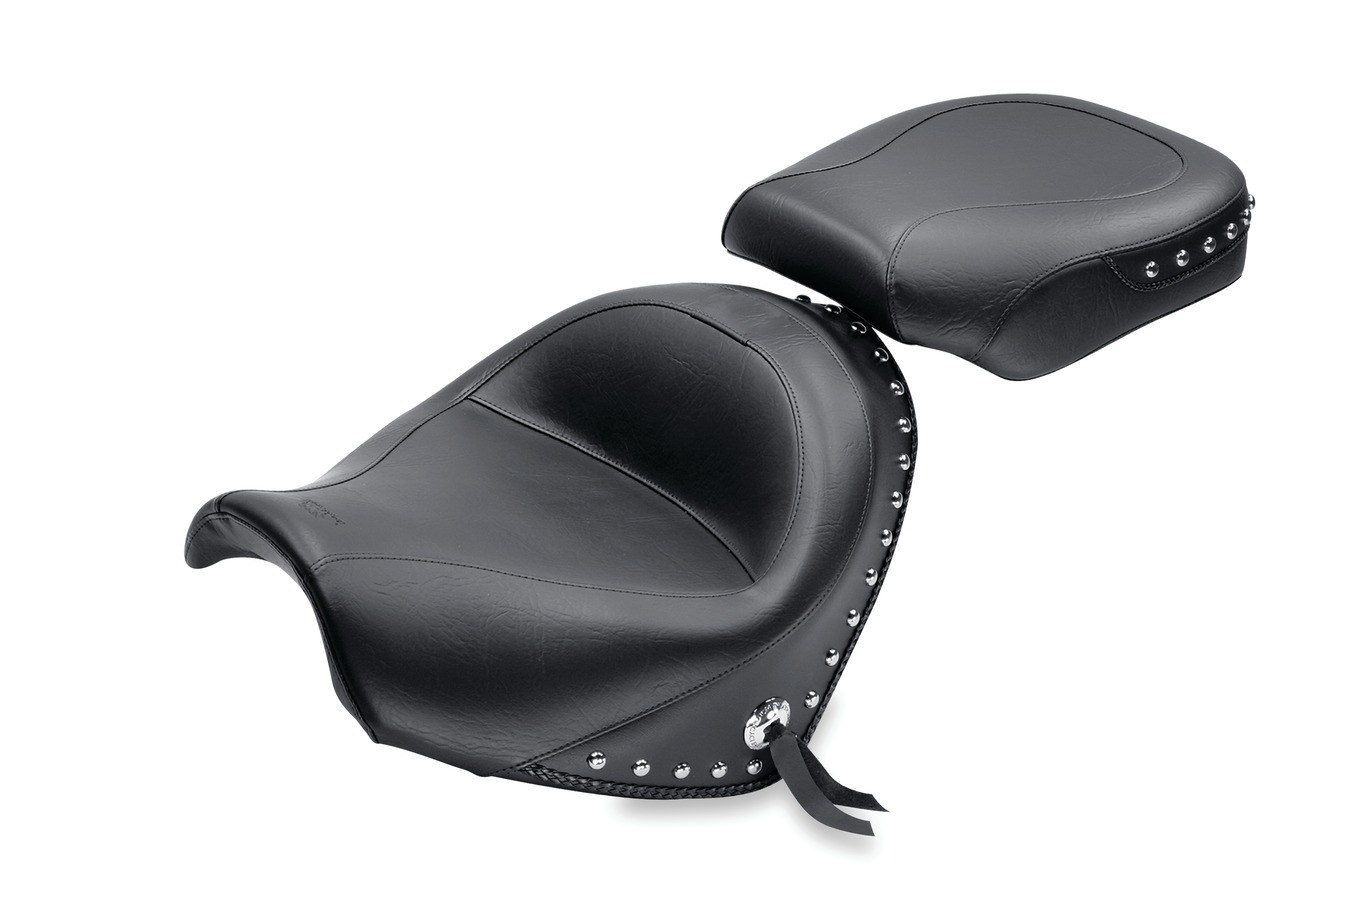 Standard Touring Two-Piece Seat, Chrome Studded with Conchos, Black